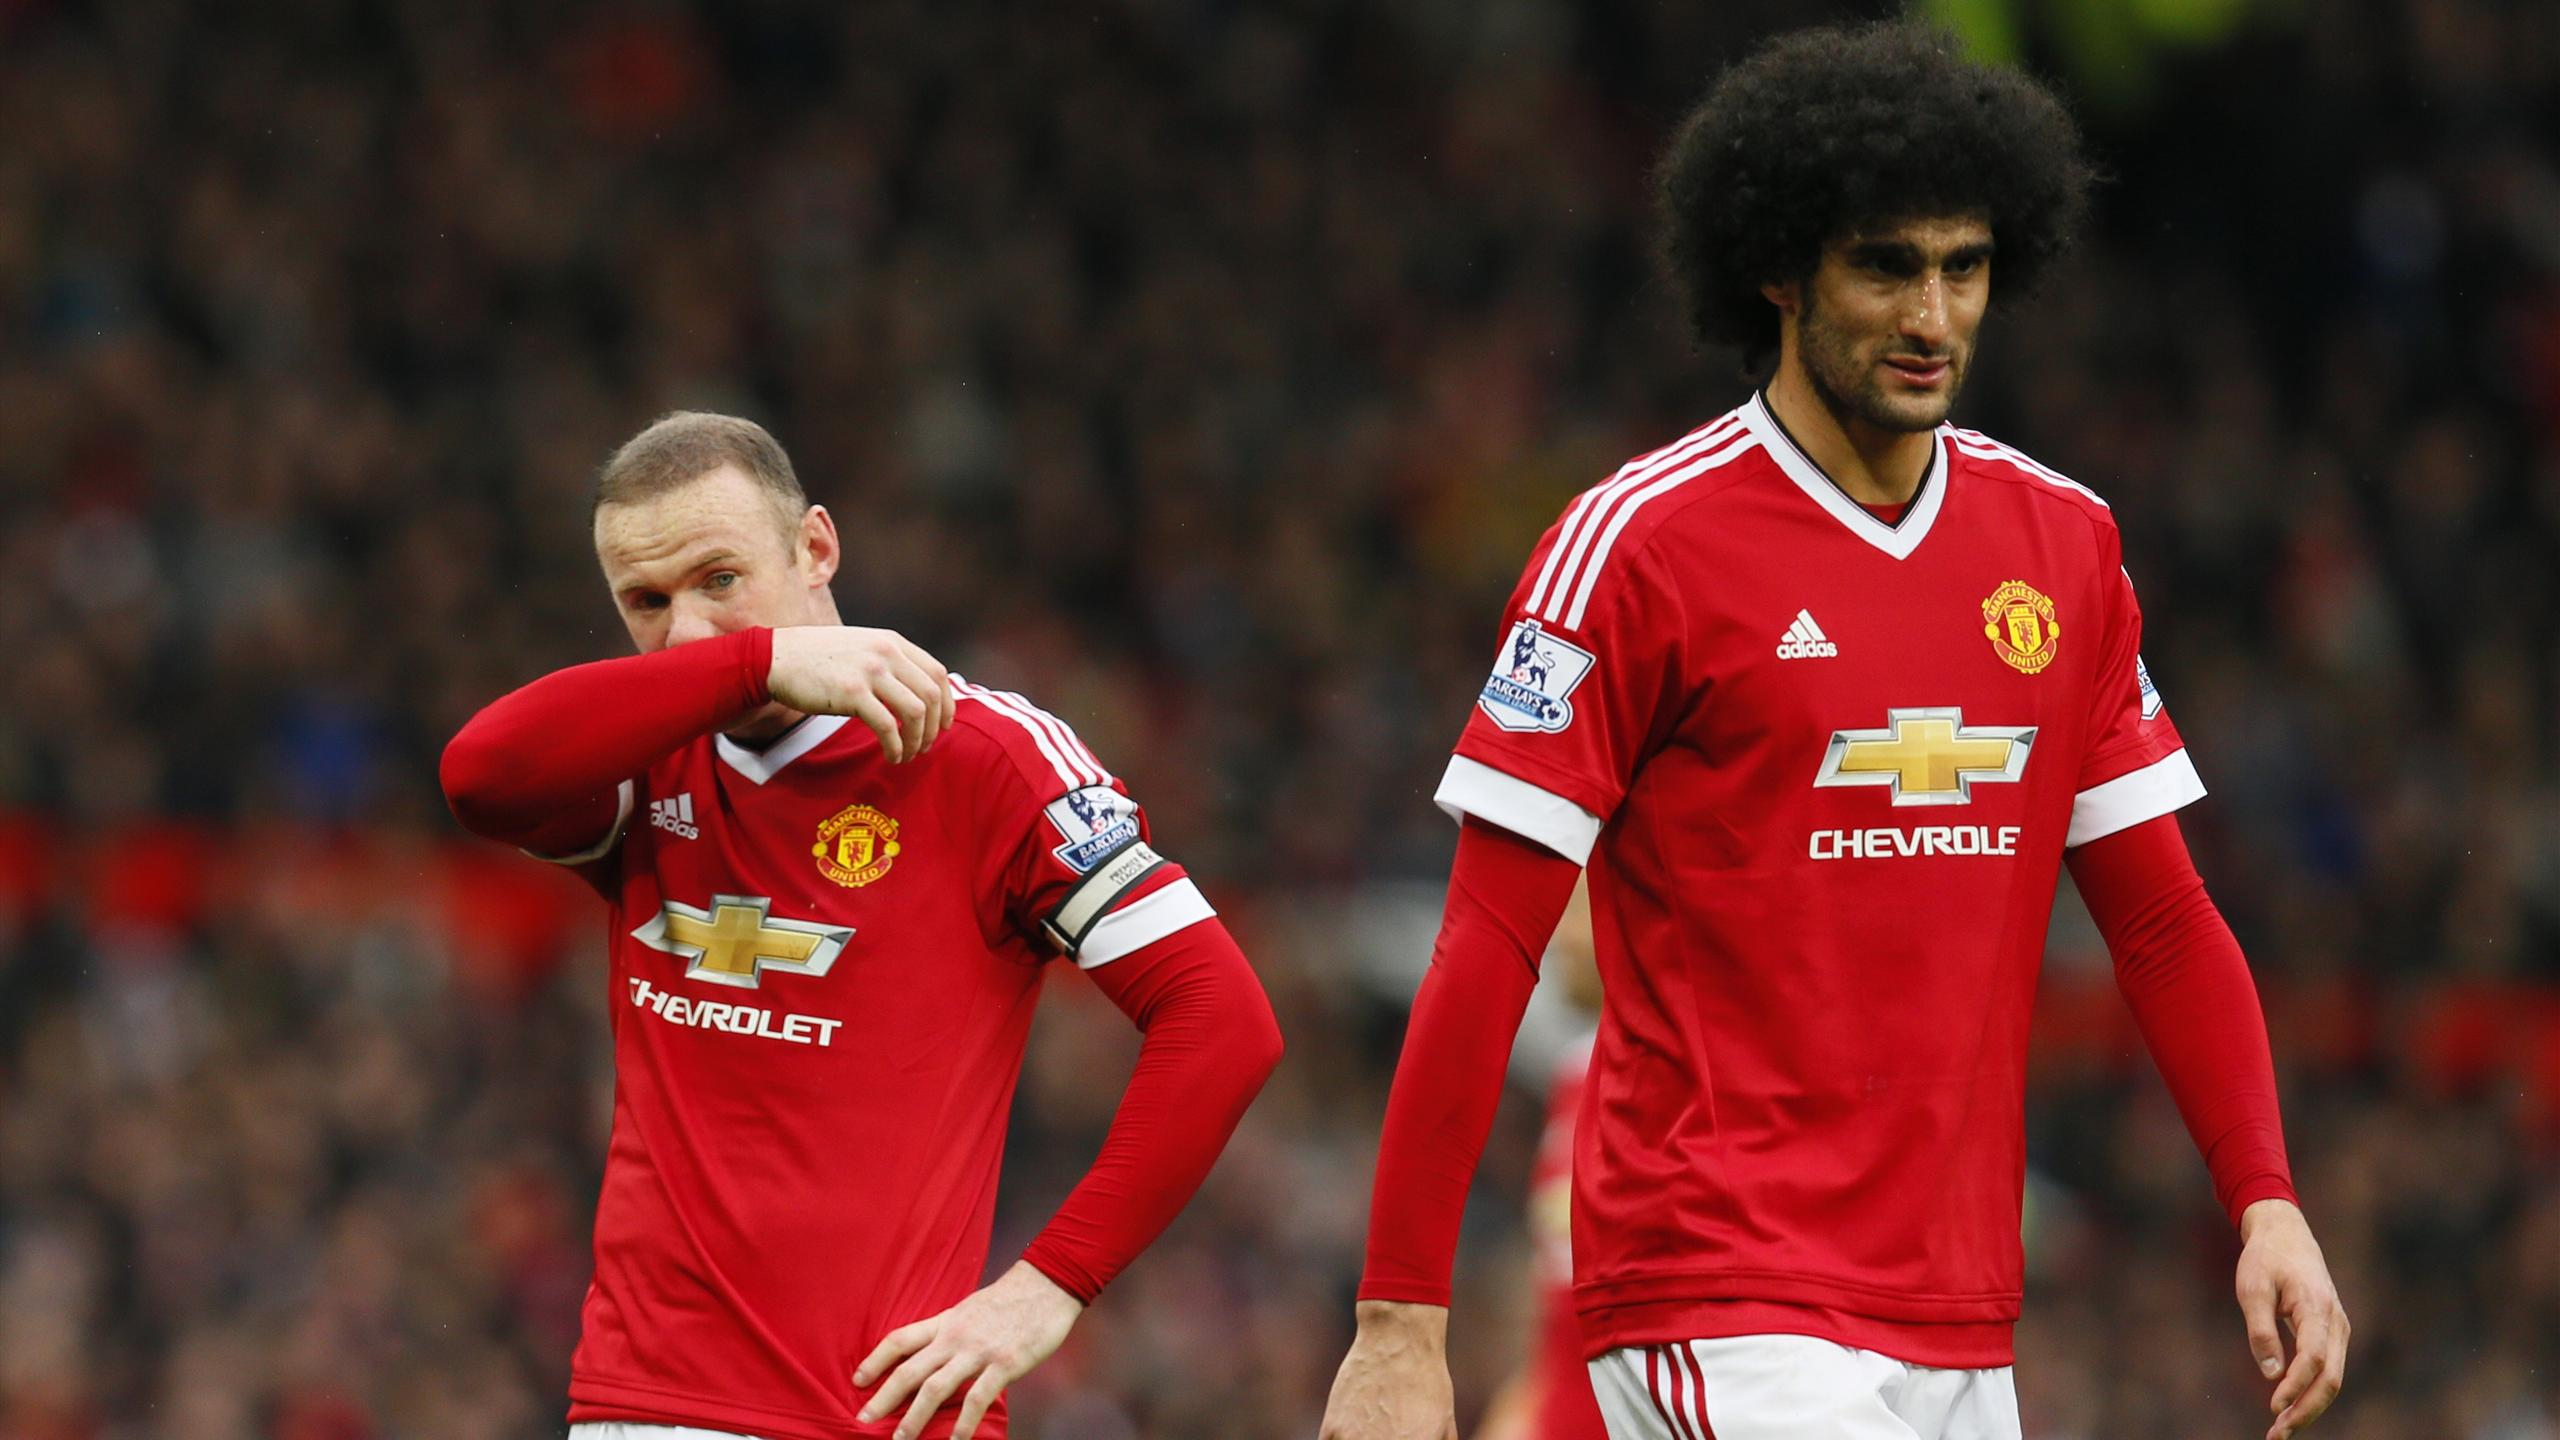 Marouane Fellaini in action against Leicester, with Wayne Rooney